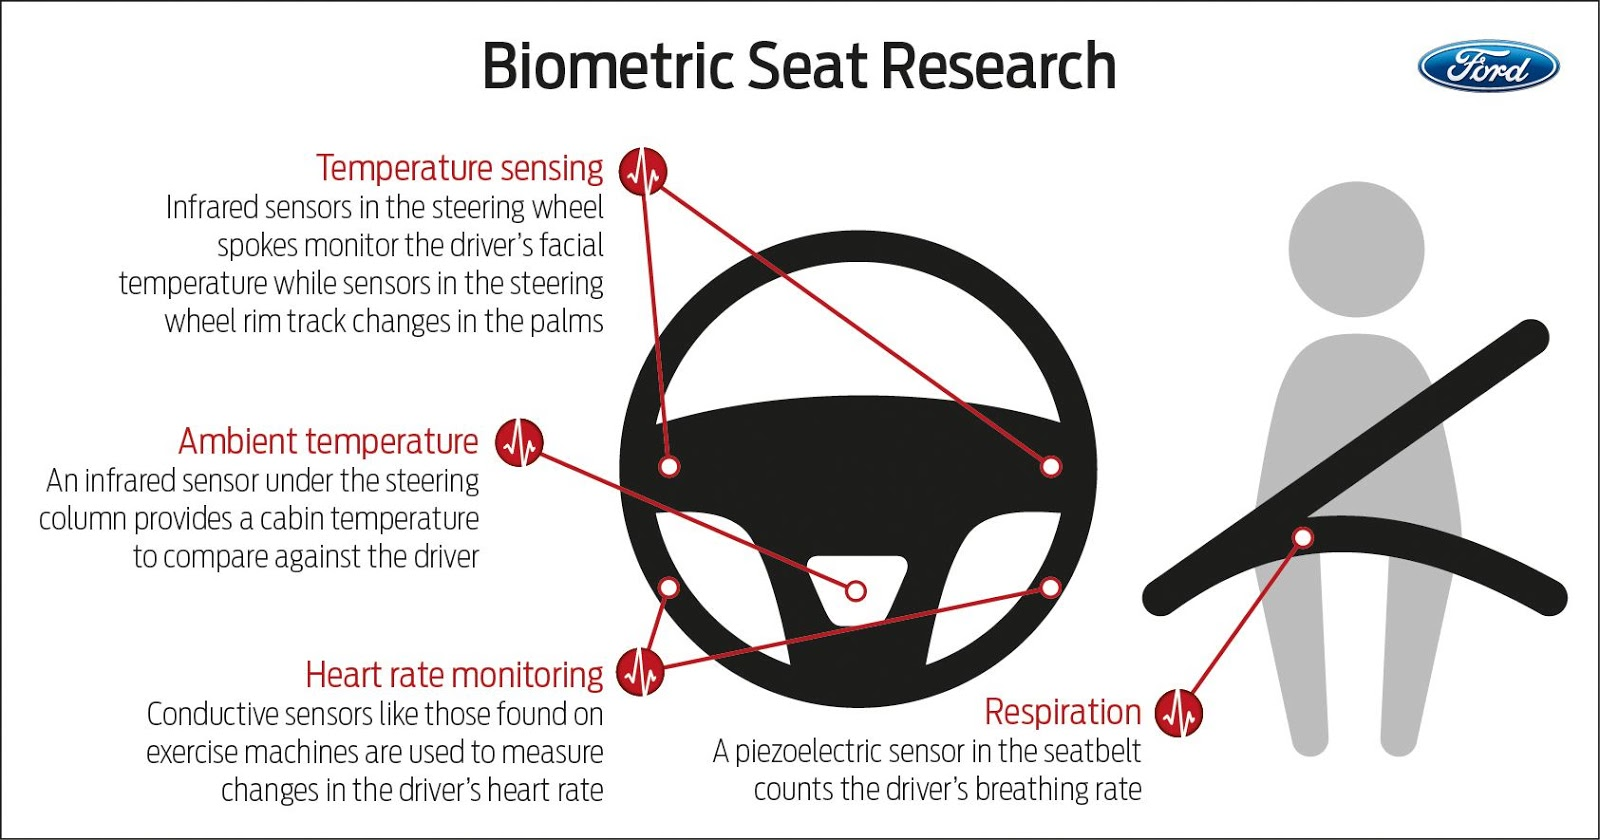 Biometric Seat Research - Ford Motor Company